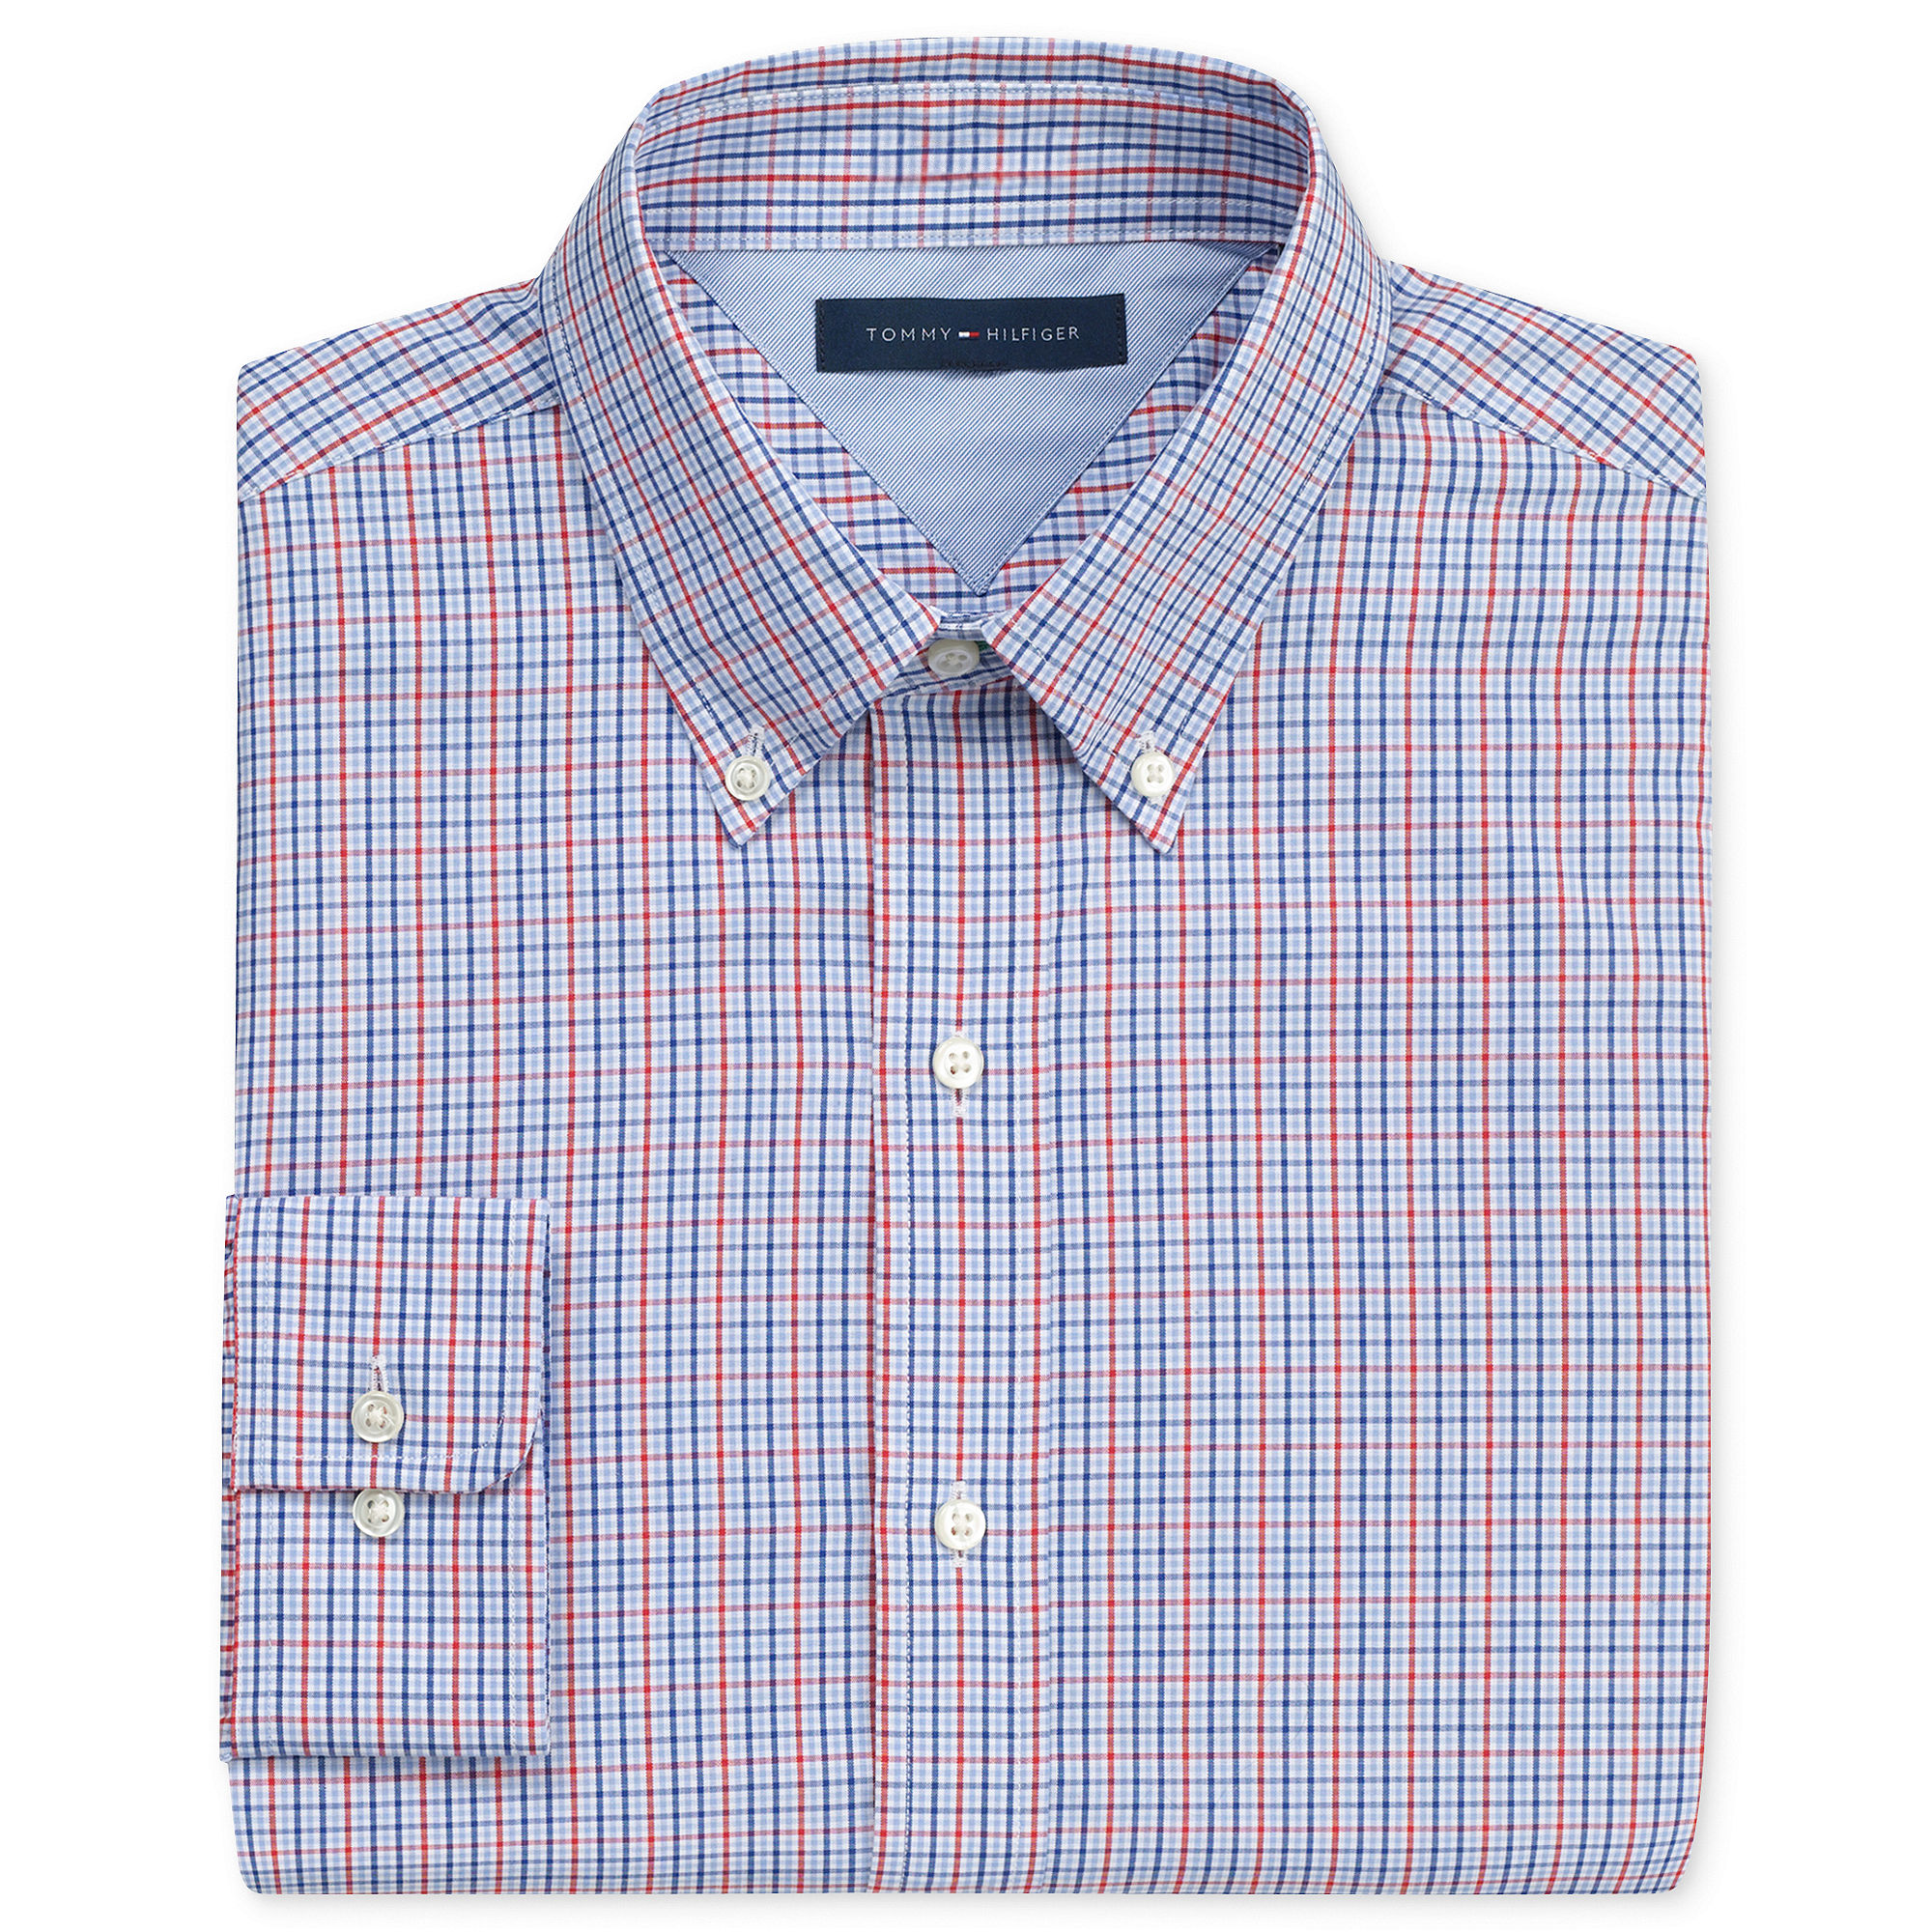 af09b0ac2bb3 Lyst - Tommy Hilfiger Red and Blue Mini Box Check Long Sleeve Shirt ...